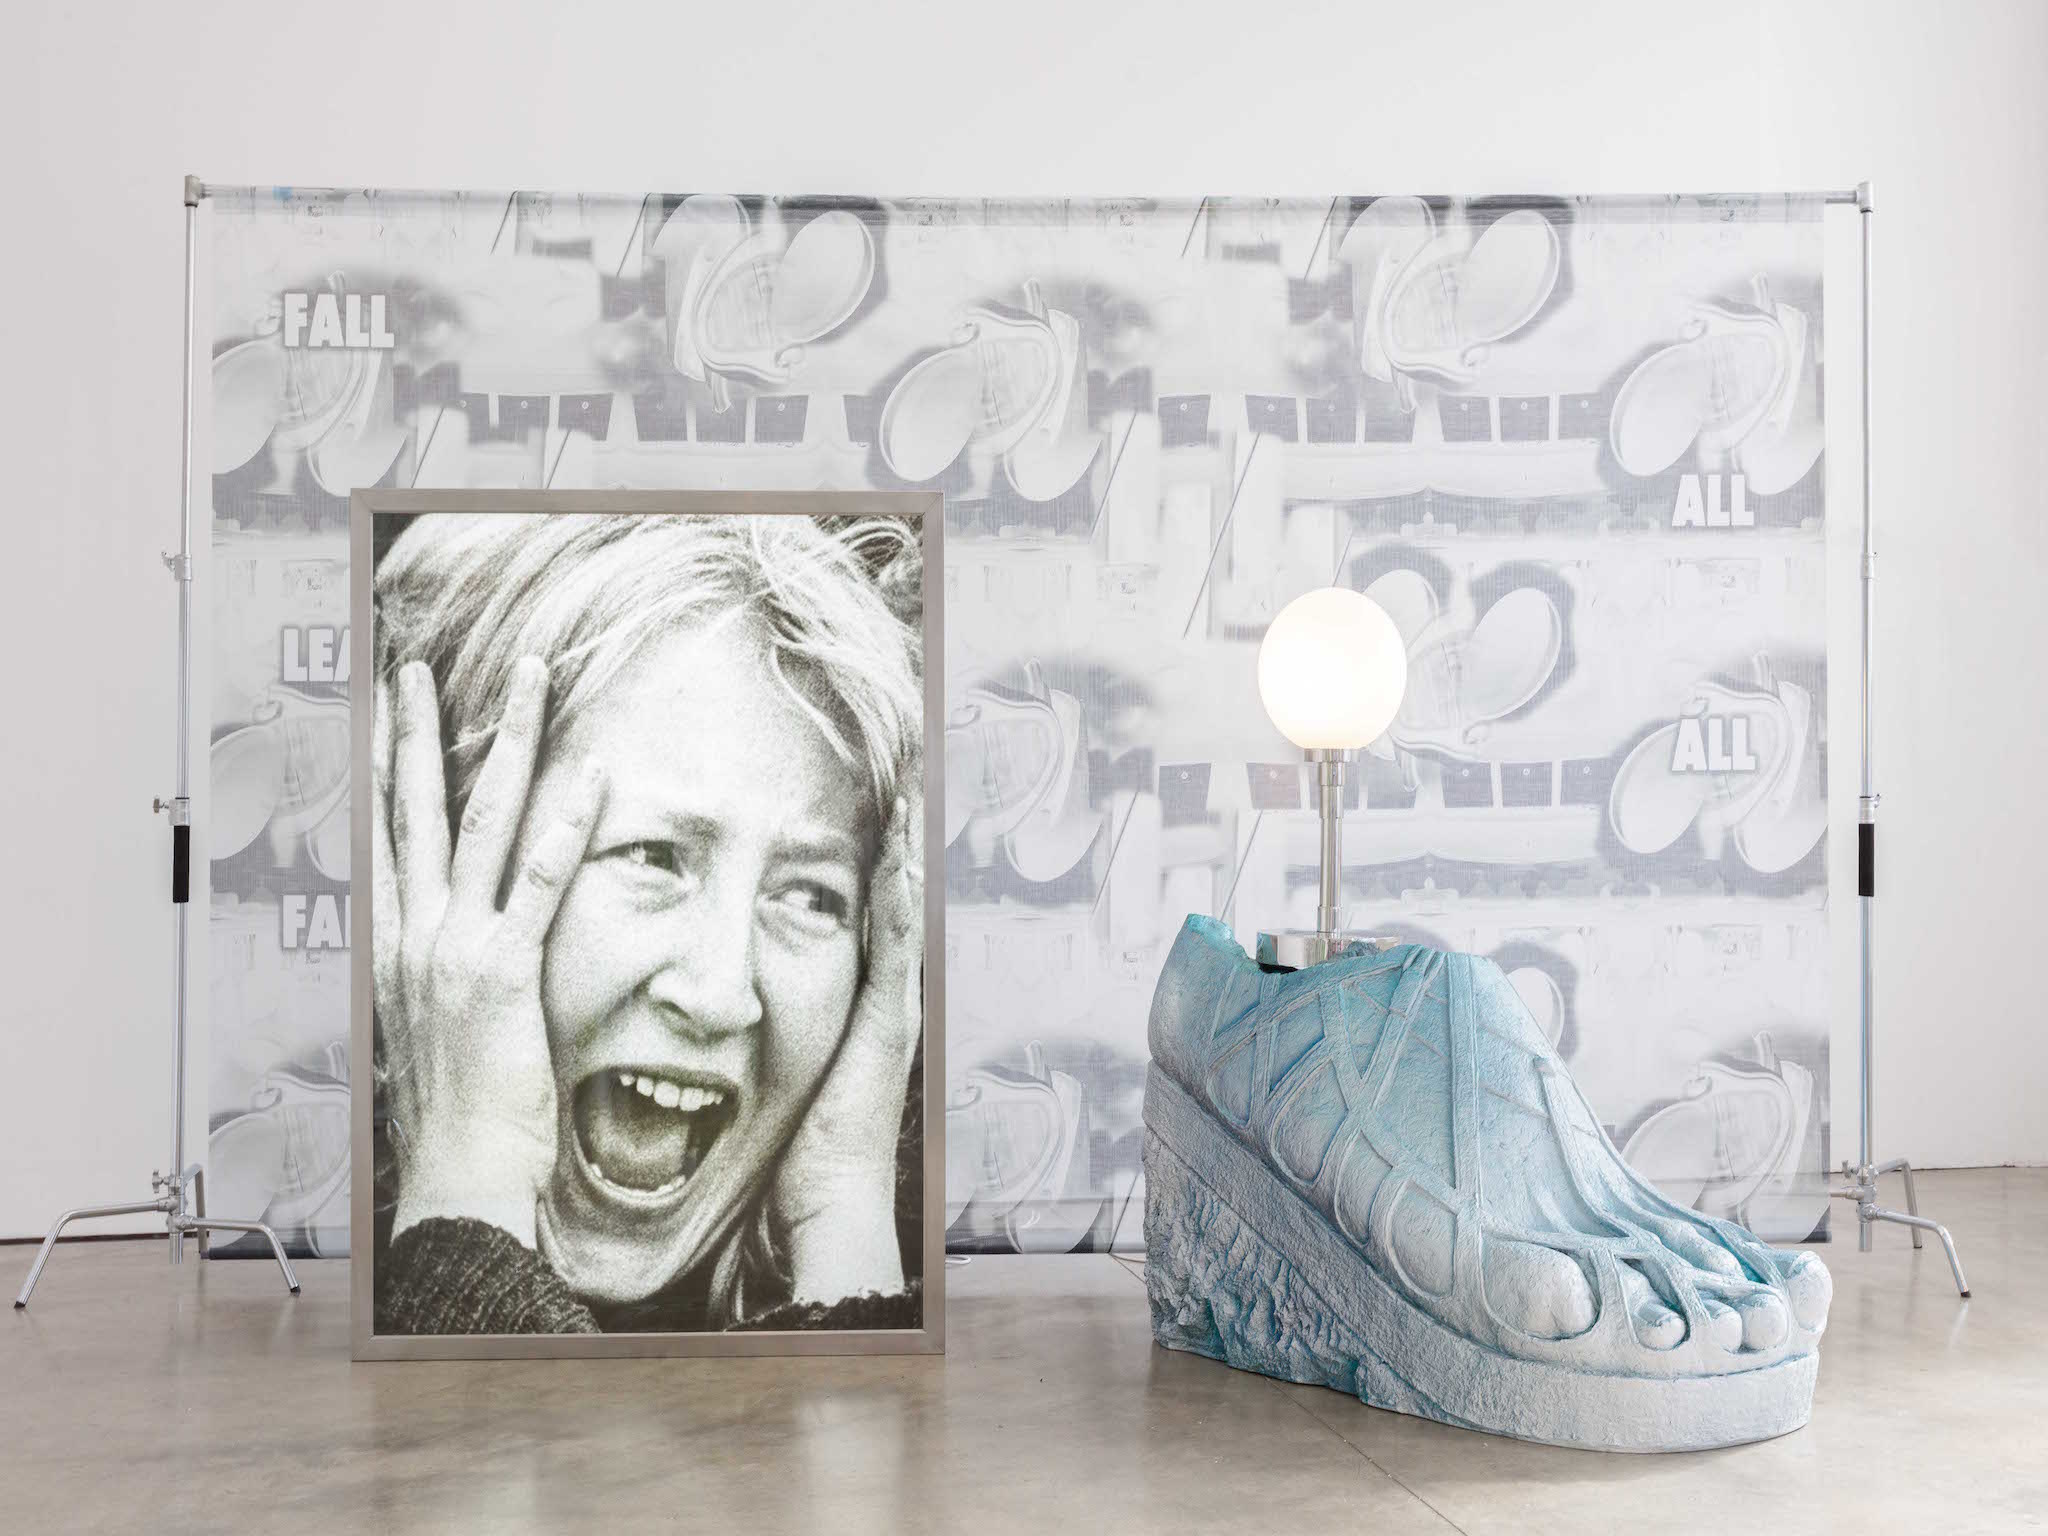 Guan Xiao: Flattened Metal, in association with K11 Art Foundation